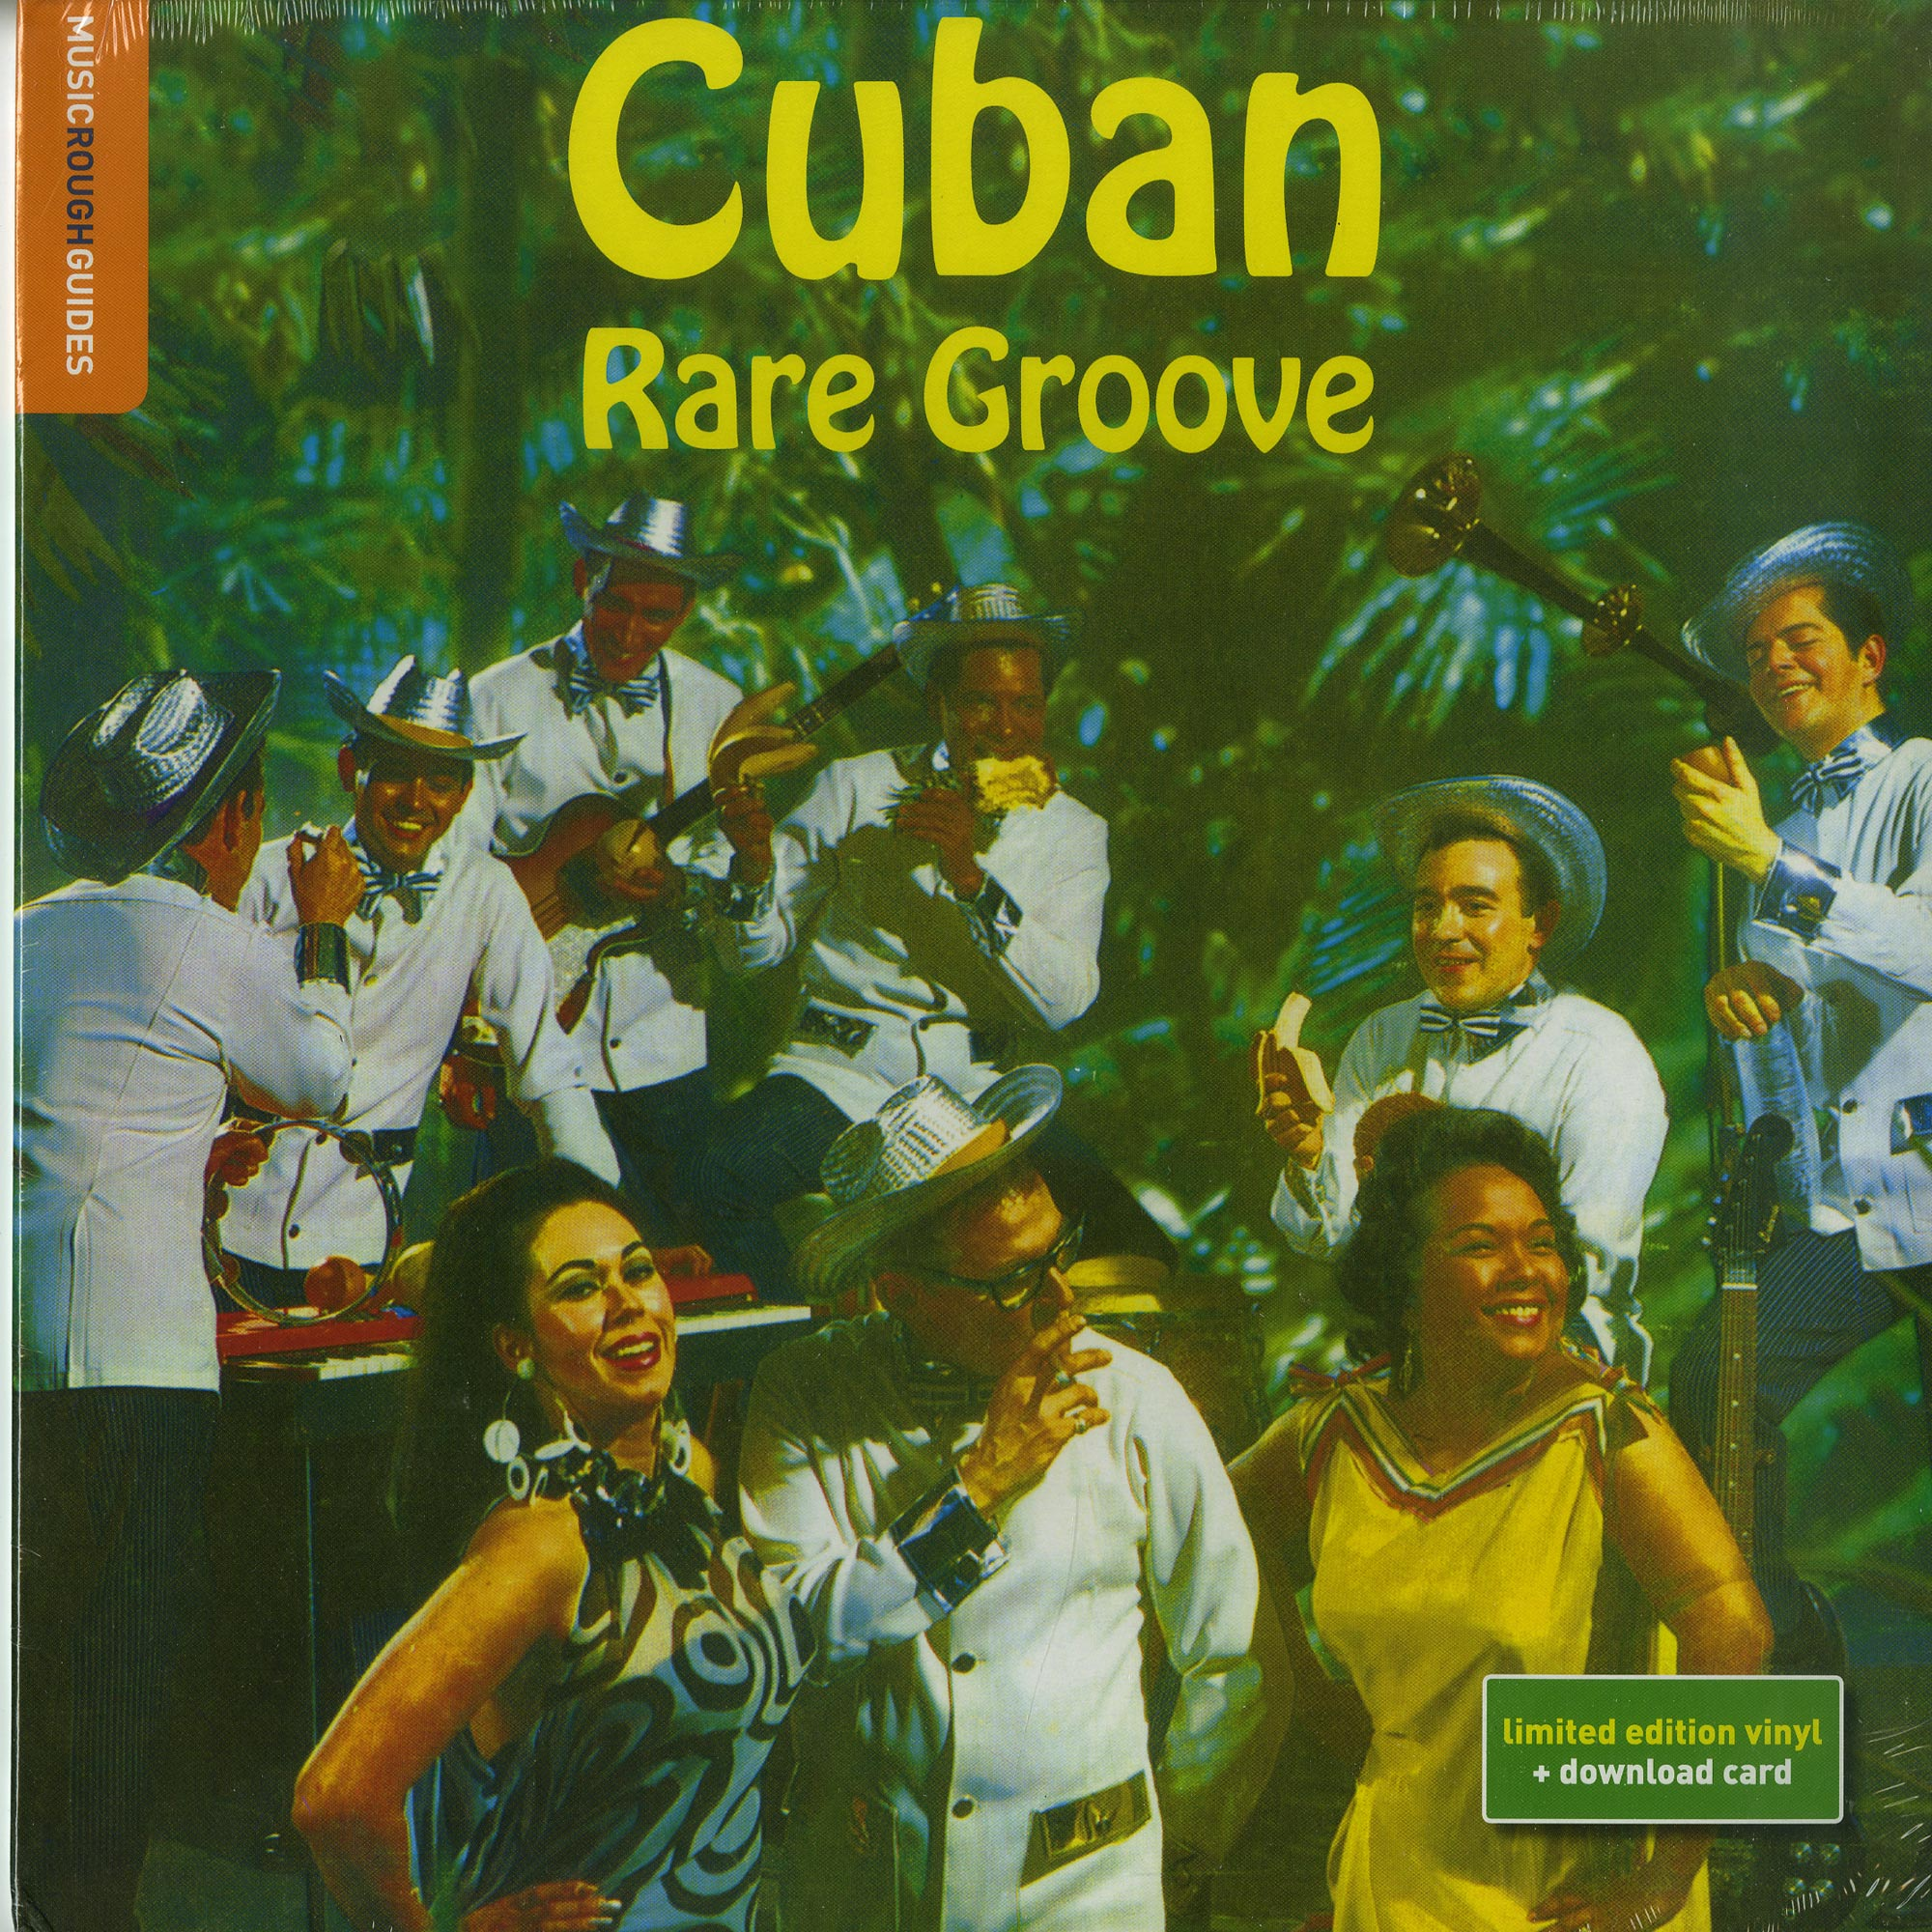 Various Artists - THE ROUGH GUIDE TO CUBAN RARE GROOVE